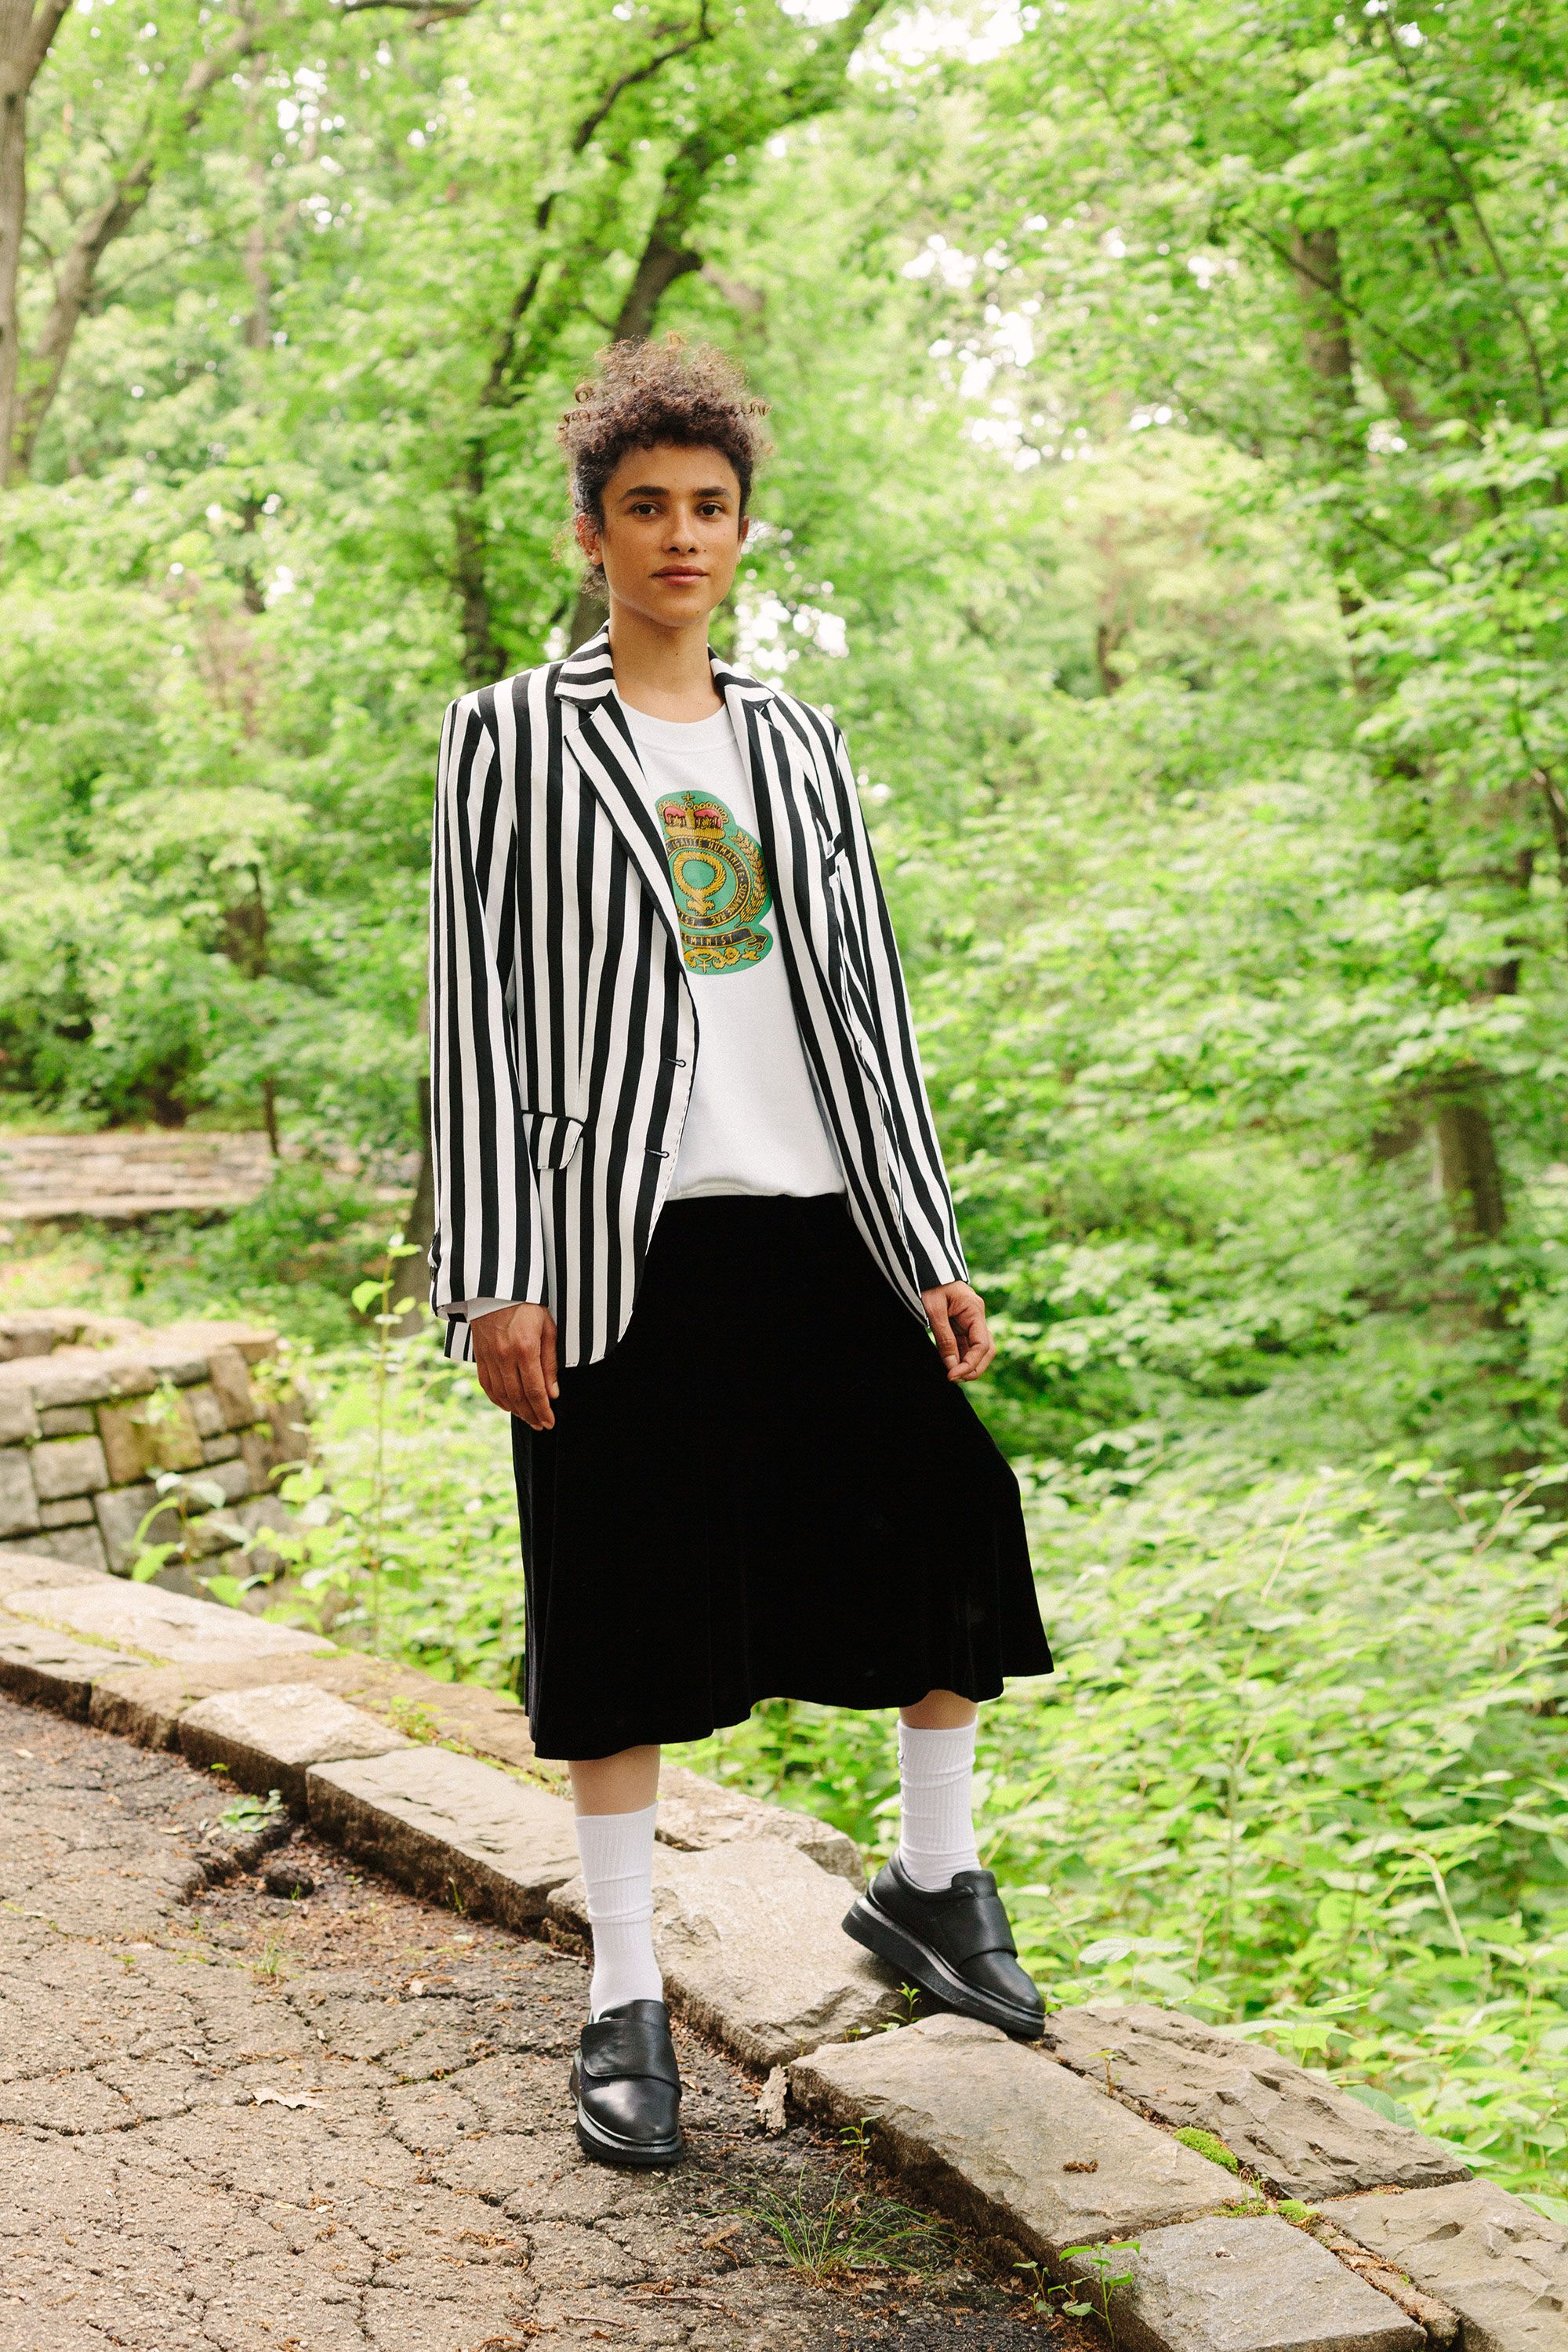 Pin by Suzanne Rae on ps19 Fashion, Androgynous fashion